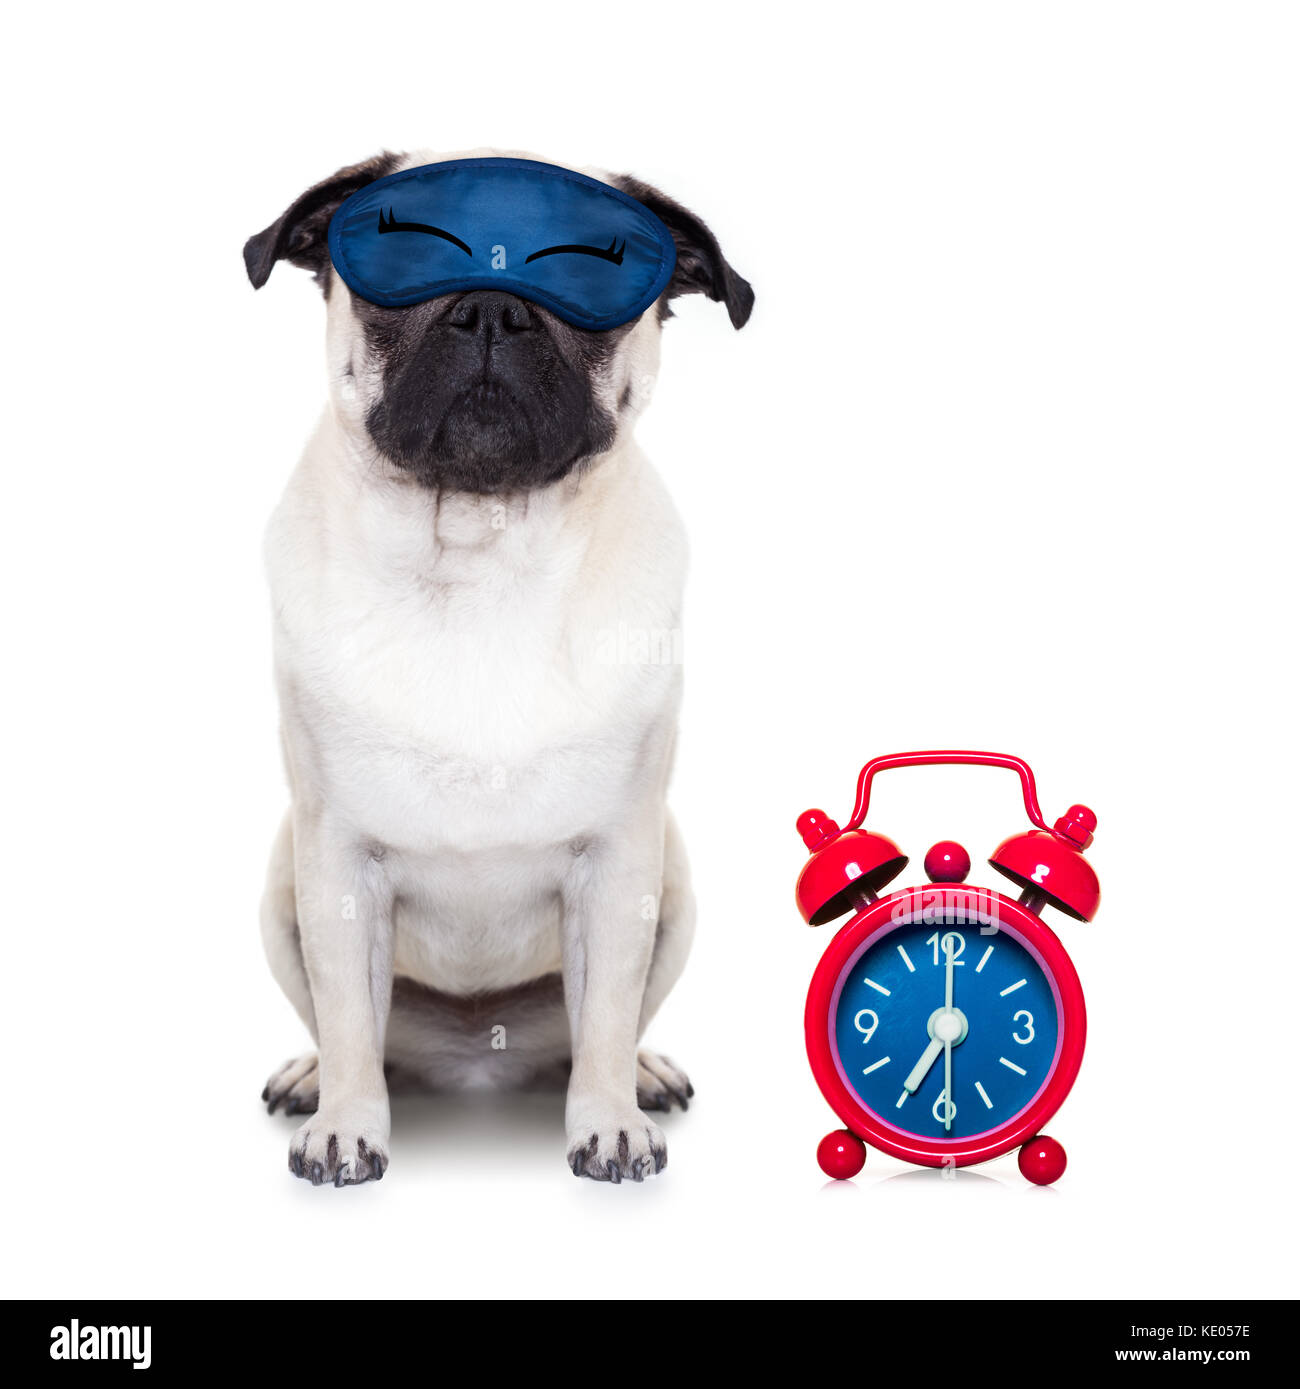 pug  dog  resting ,sleeping or having a siesta  with alarm  clock and eye mask, isolated on white  background - Stock Image